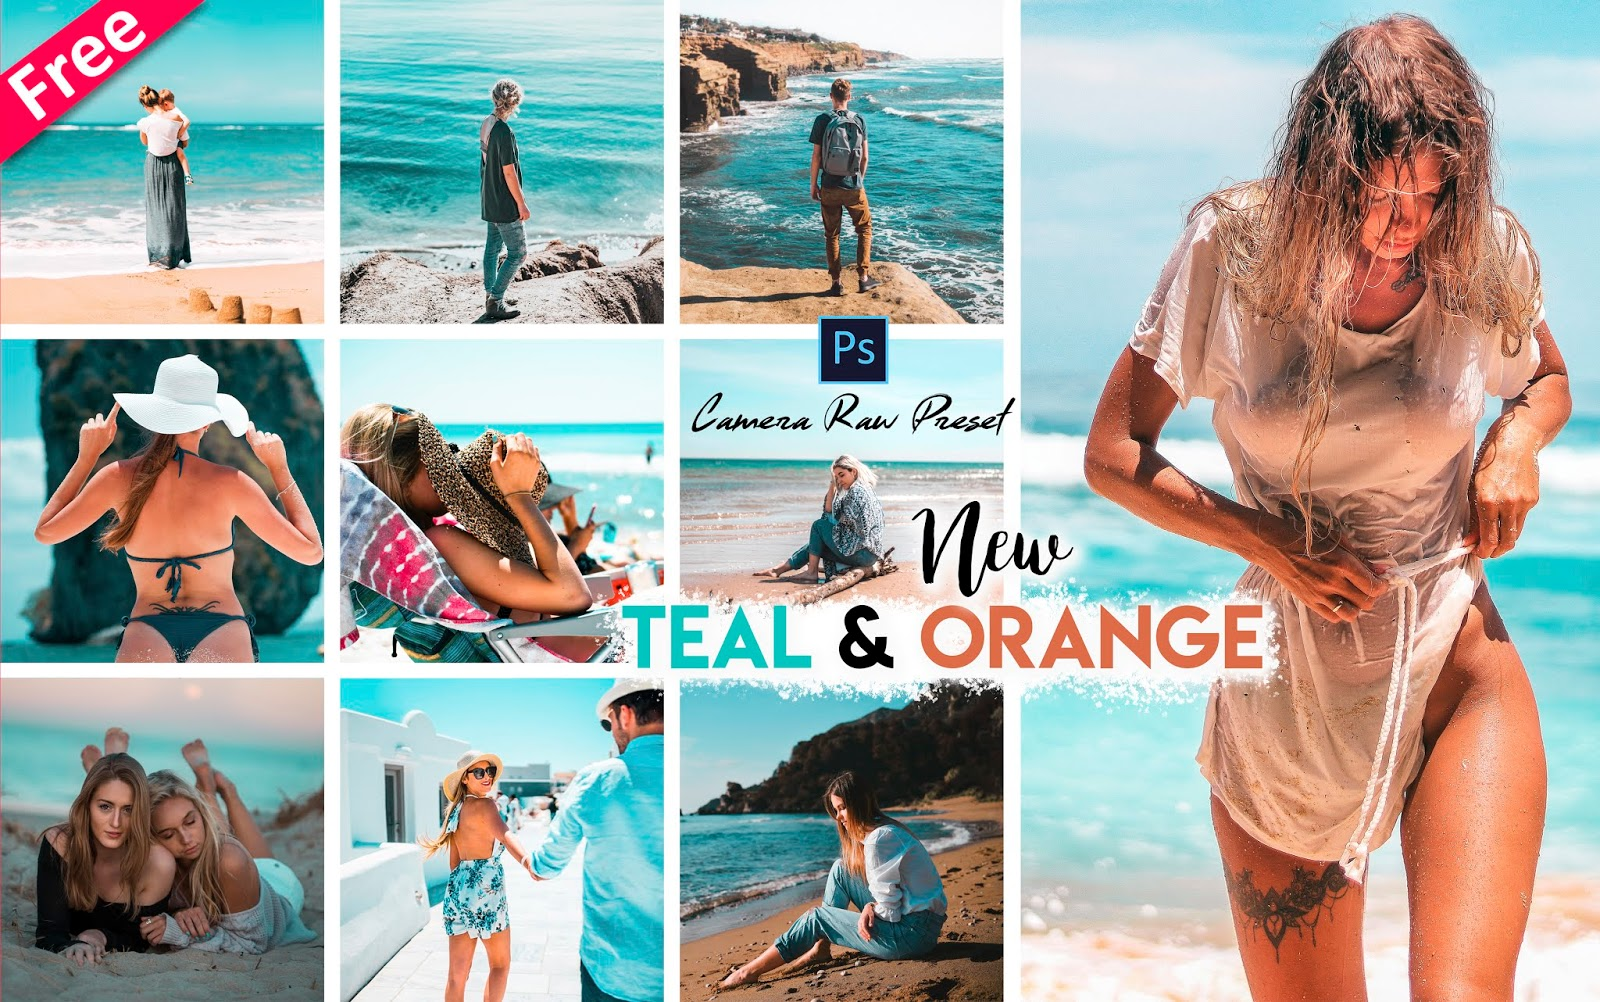 Teal & Orange Tone Camera Raw Presets for Free | How to Make Teal & Orange Tone Effect to Photos in Photoshop cc